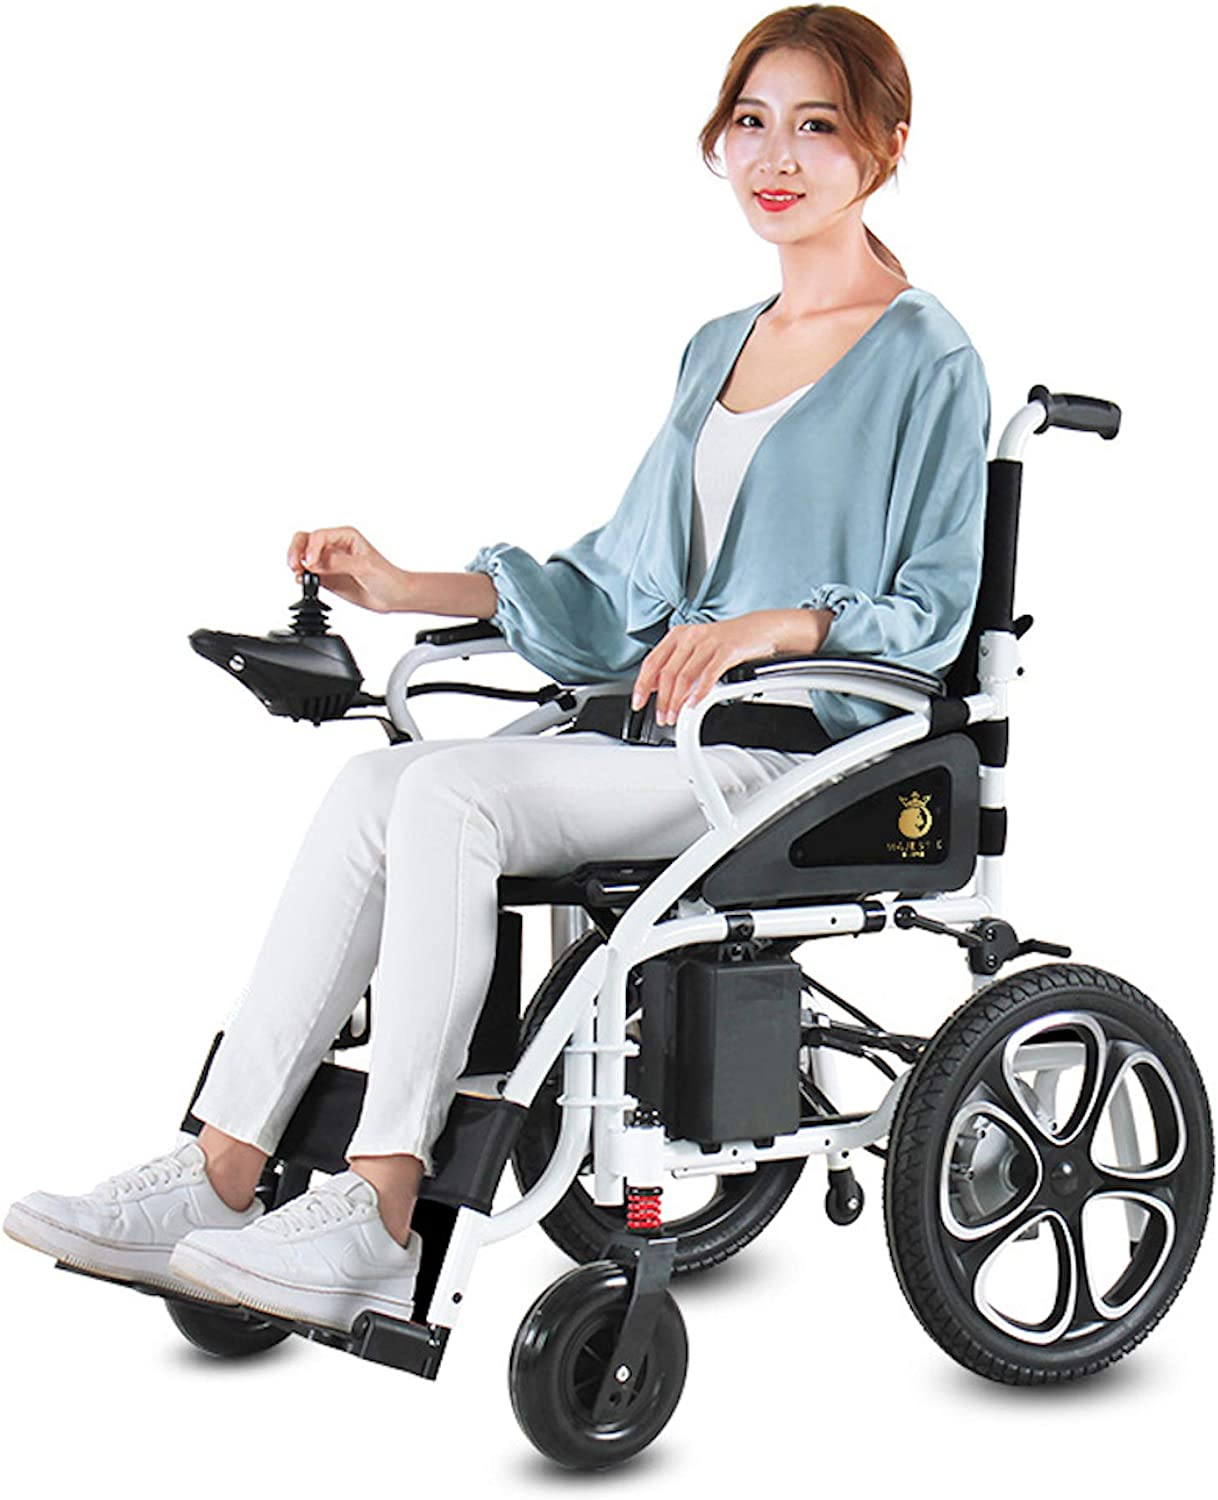 2021 Updated Electric Wheelchairs Silla de Ruedas Electrica para Adultos Airline Approved Transport Friendly Lightweight Folding Electric Wheelchair for Adults by Comfy Go (White): Health & Personal Care